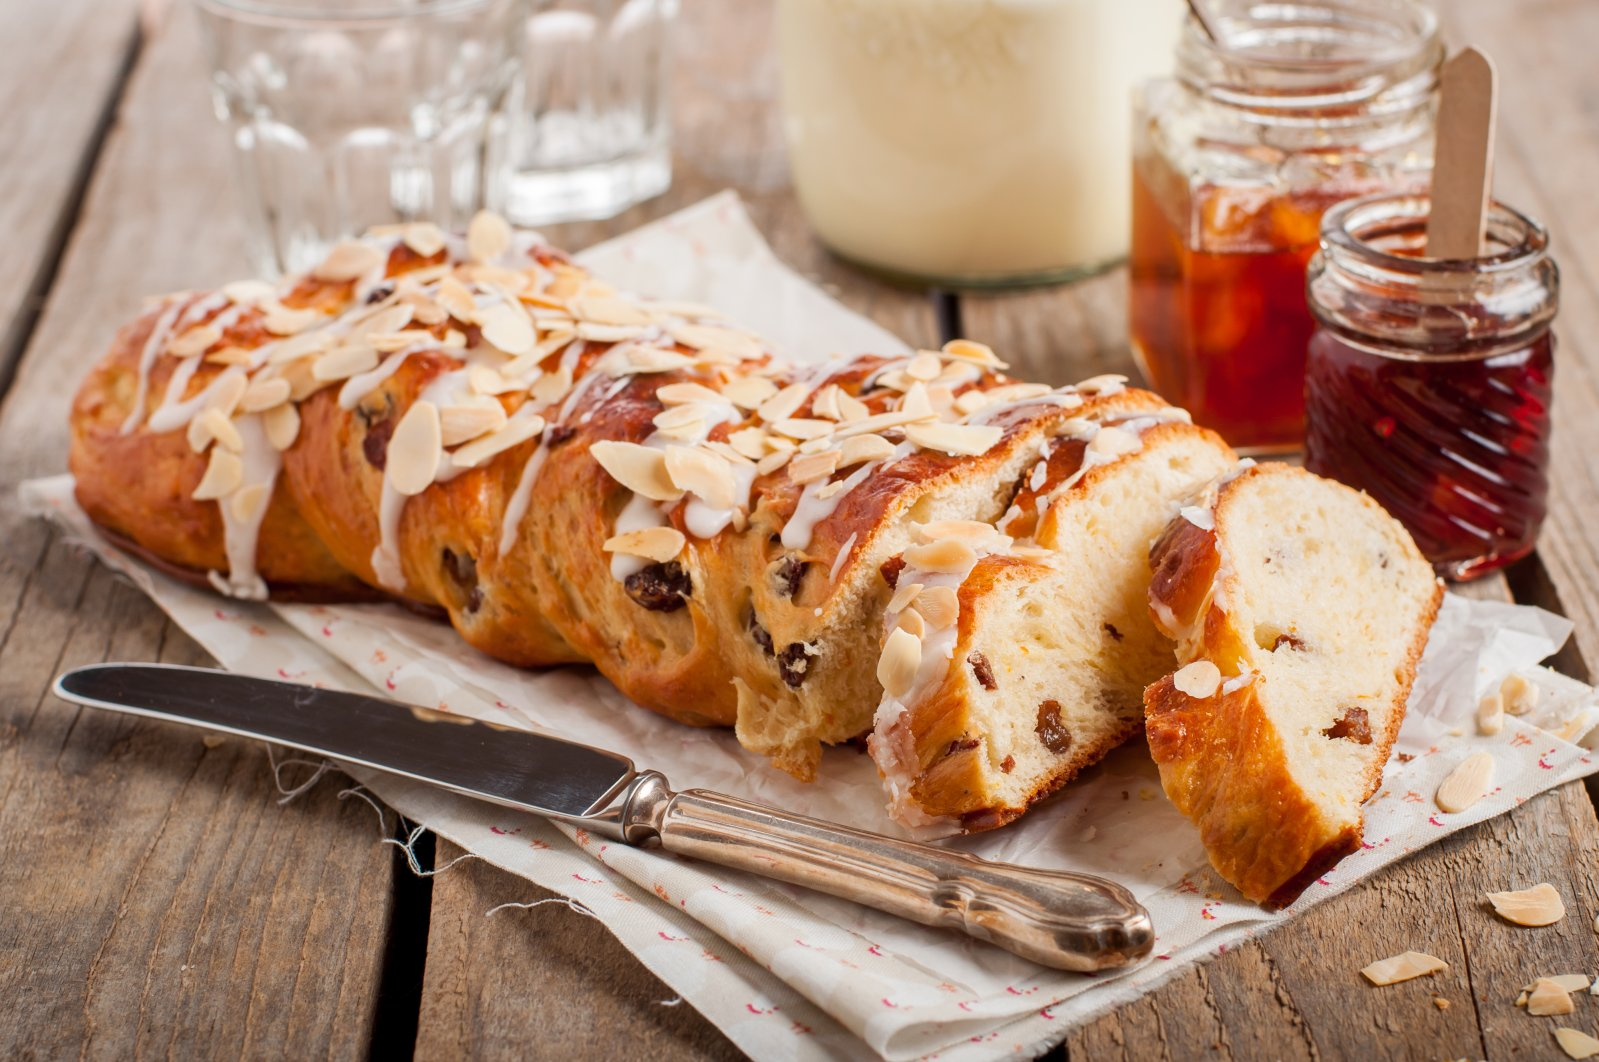 Braided Bread is an Easter classic but it tastes great all year round. (Shutterstock Photo)